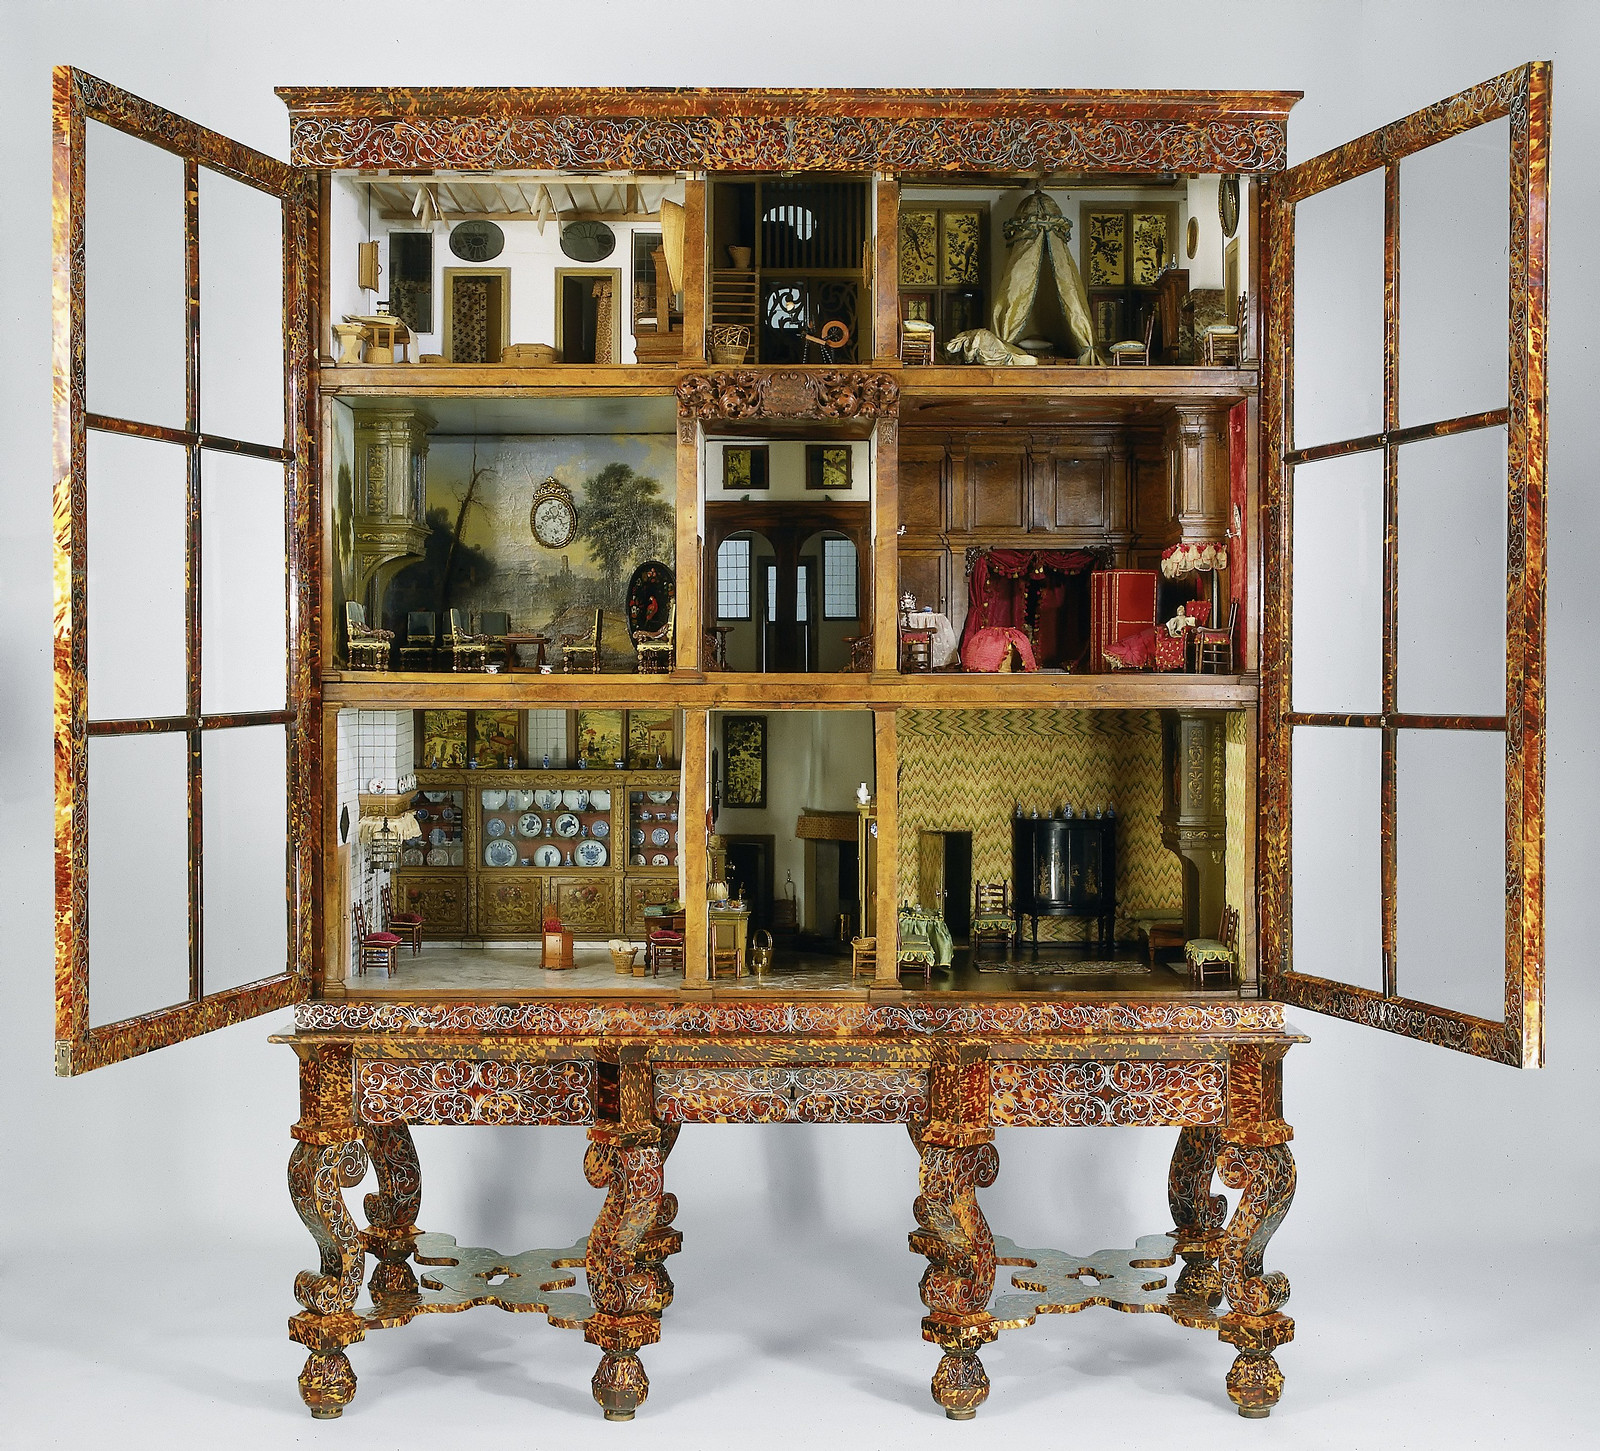 Dolls' House of Petronella Oortman, c. 1700